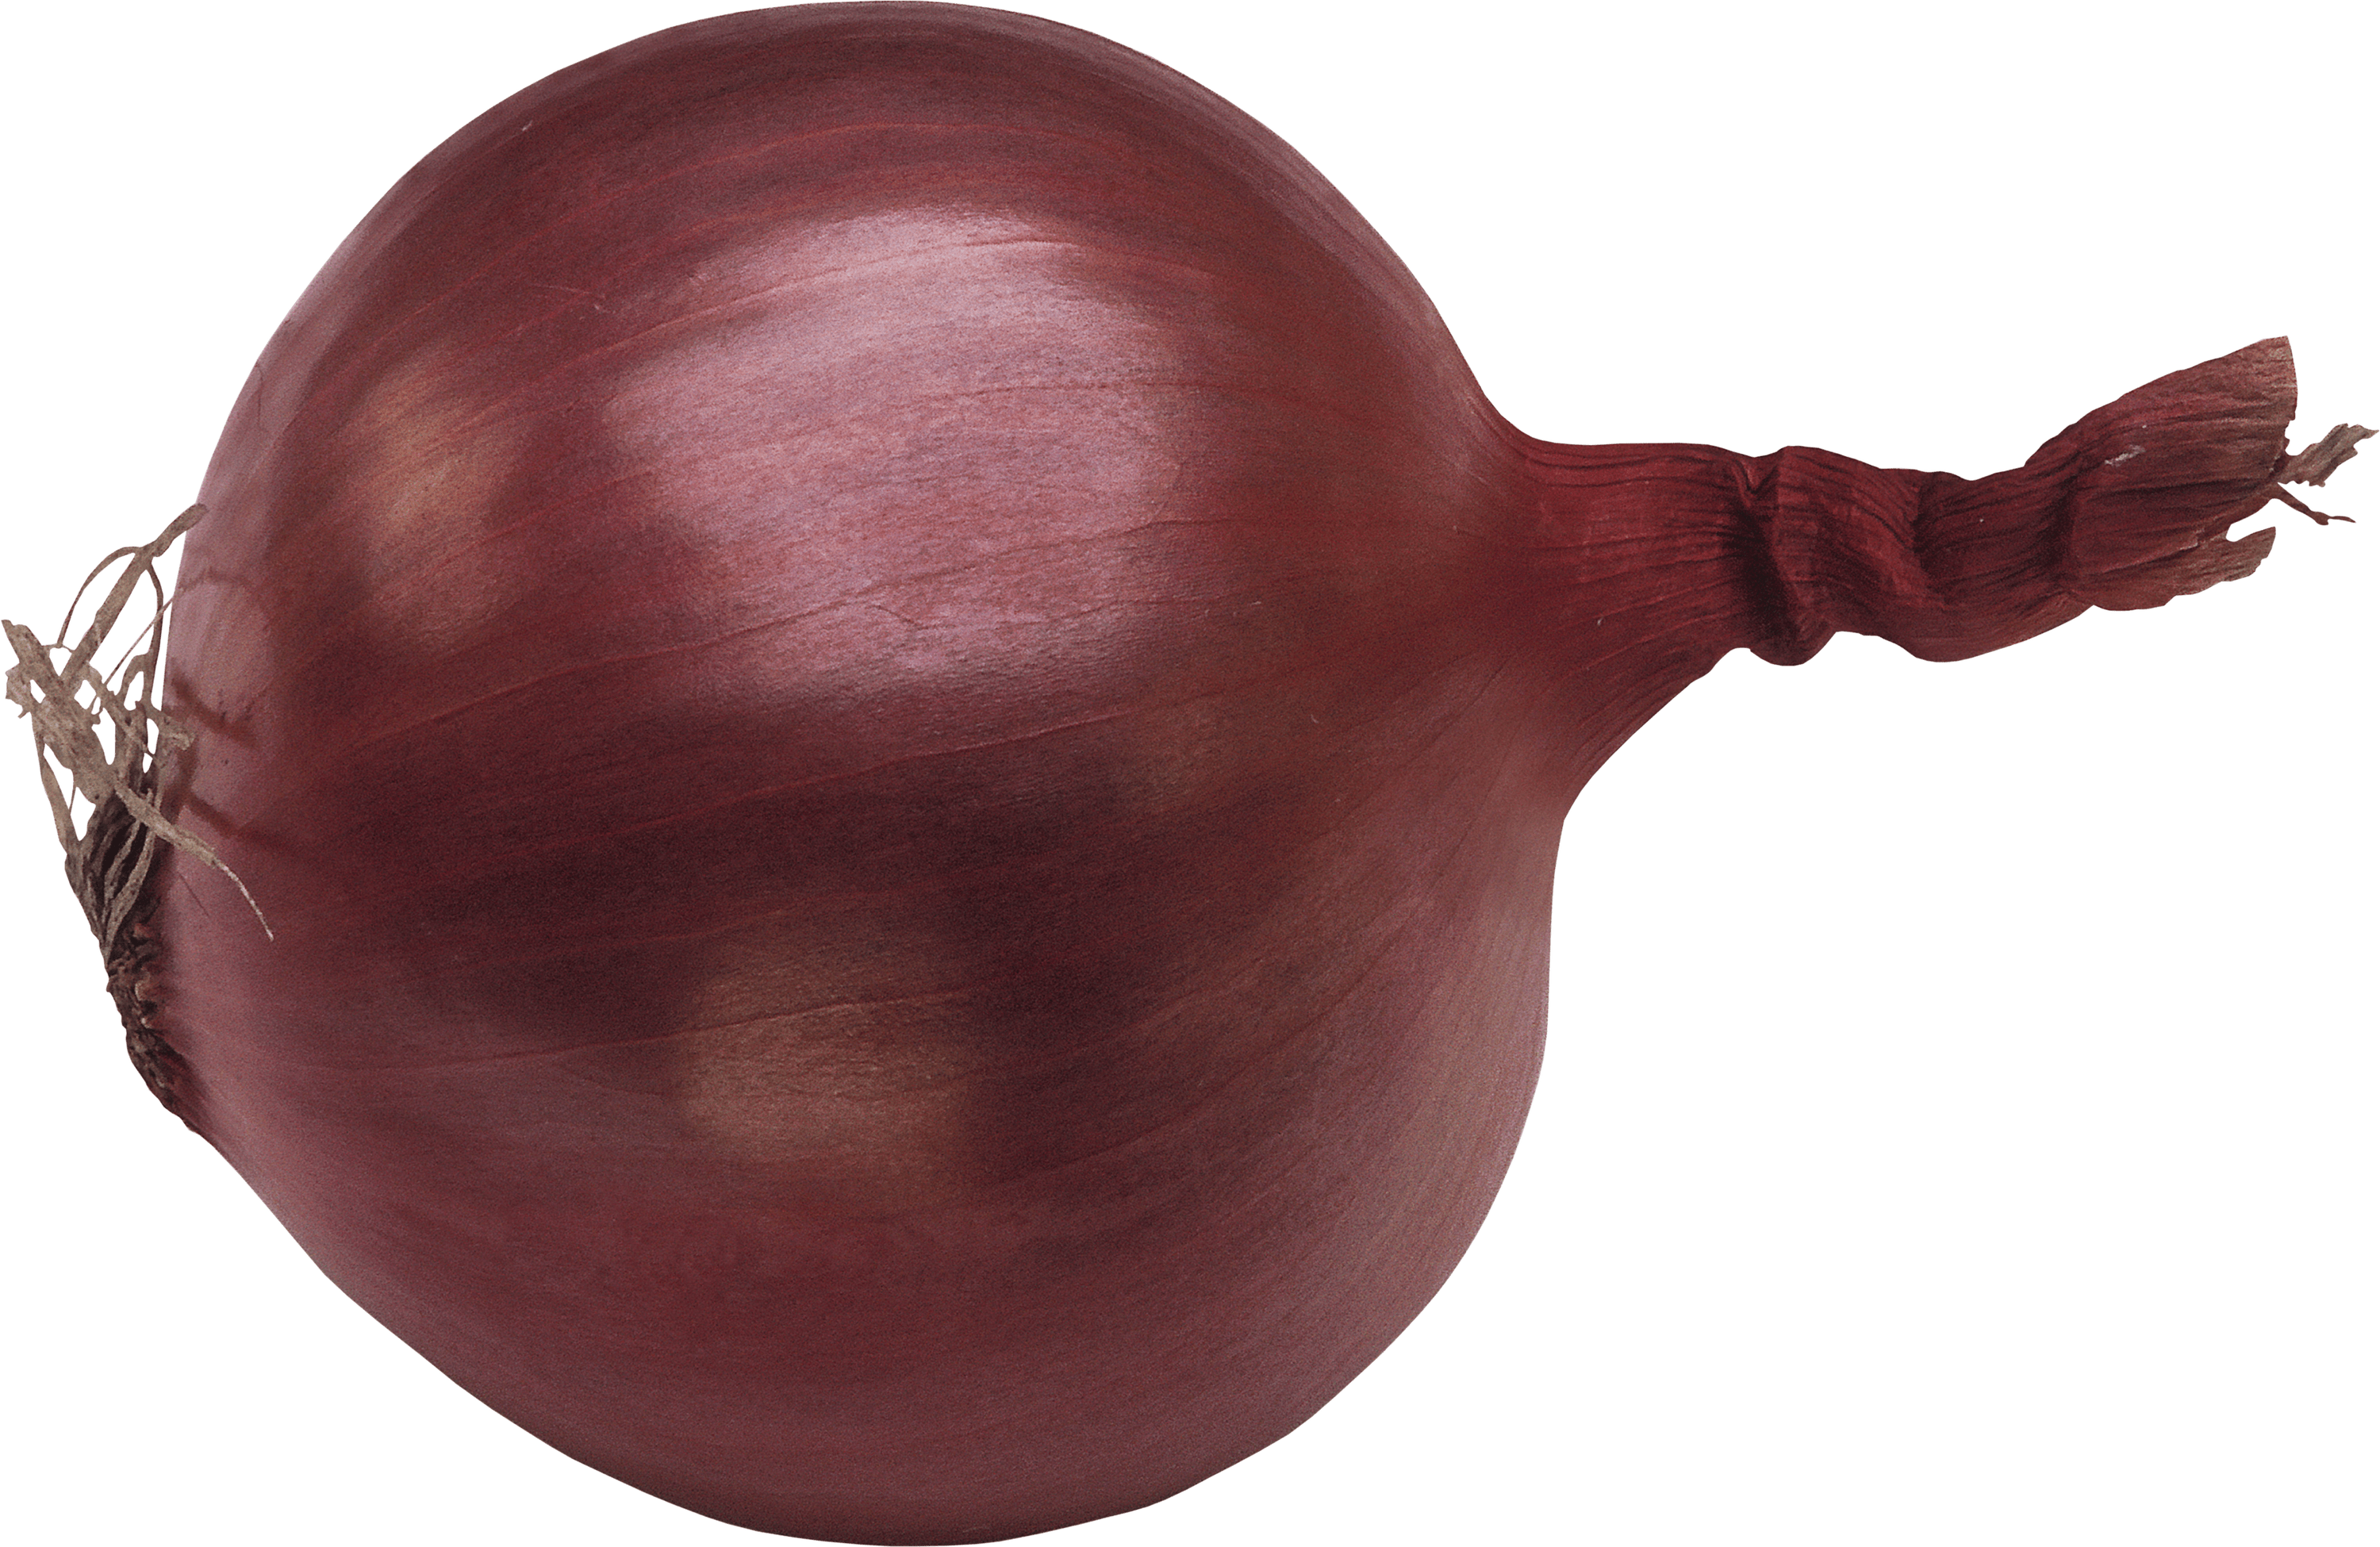 Onion clipart red onion. Transparent png stickpng food